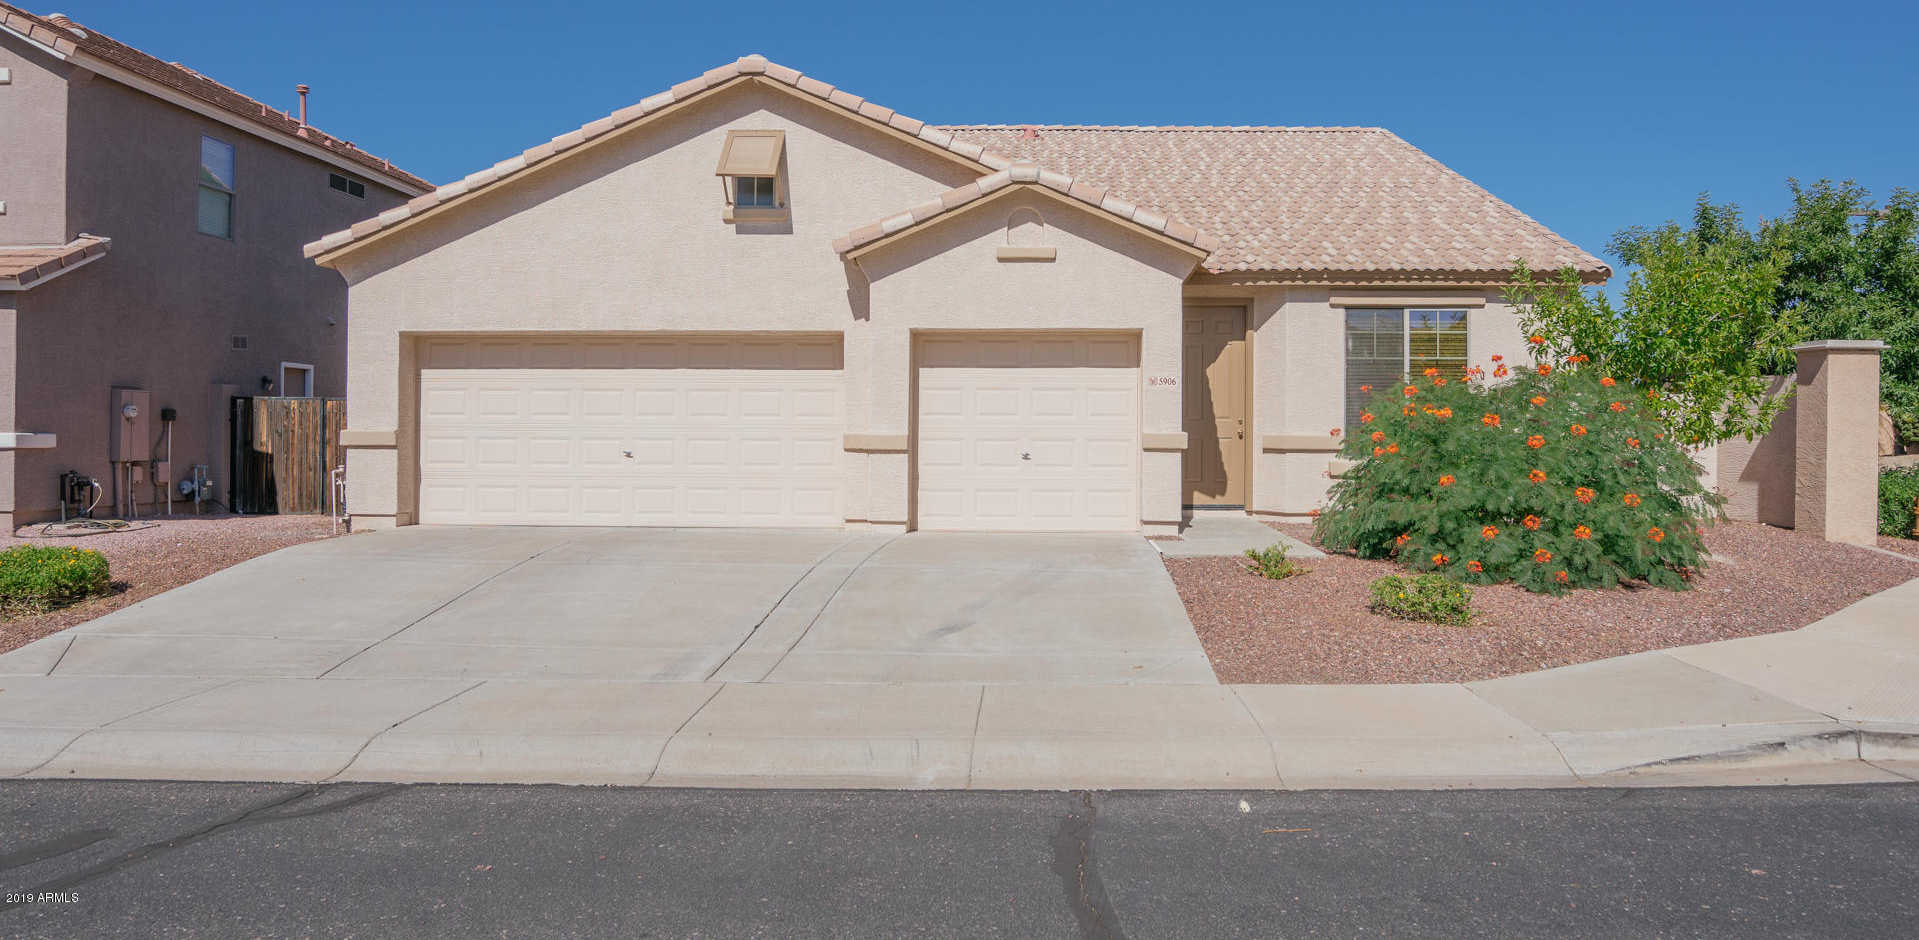 $340,000 - 4Br/2Ba - Home for Sale in Mission Ranch, Glendale